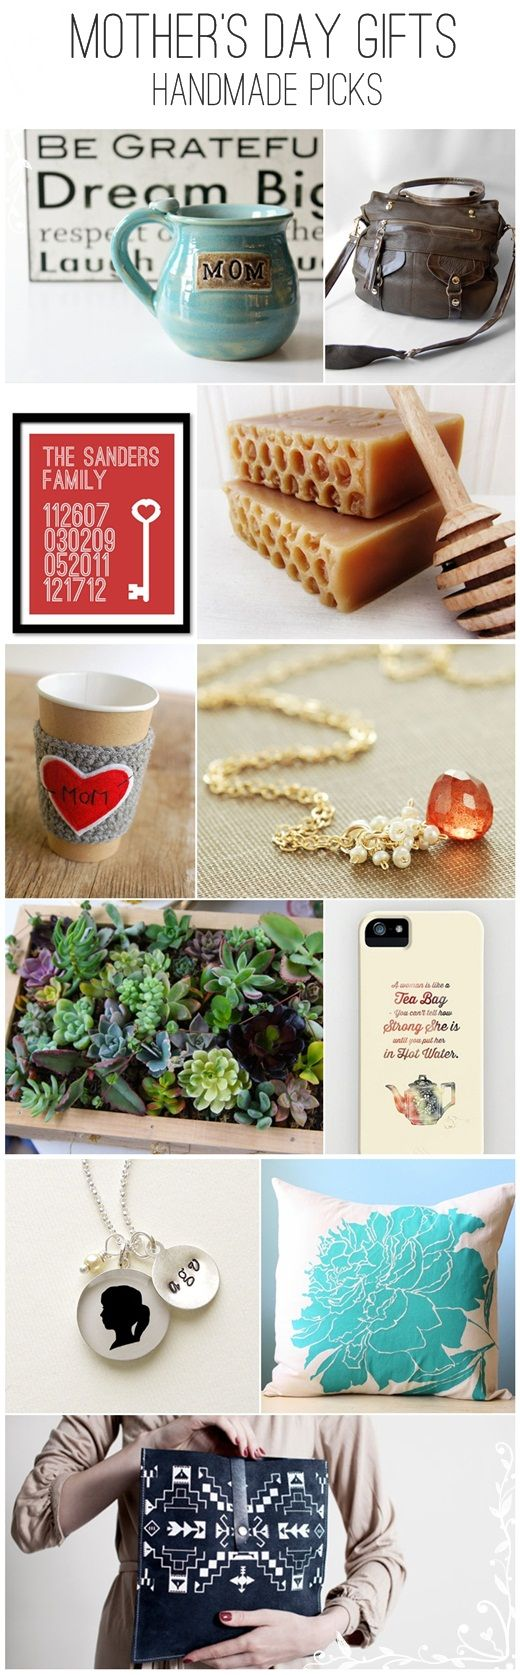 11 fabulous mother's day gifts by handmade artisans